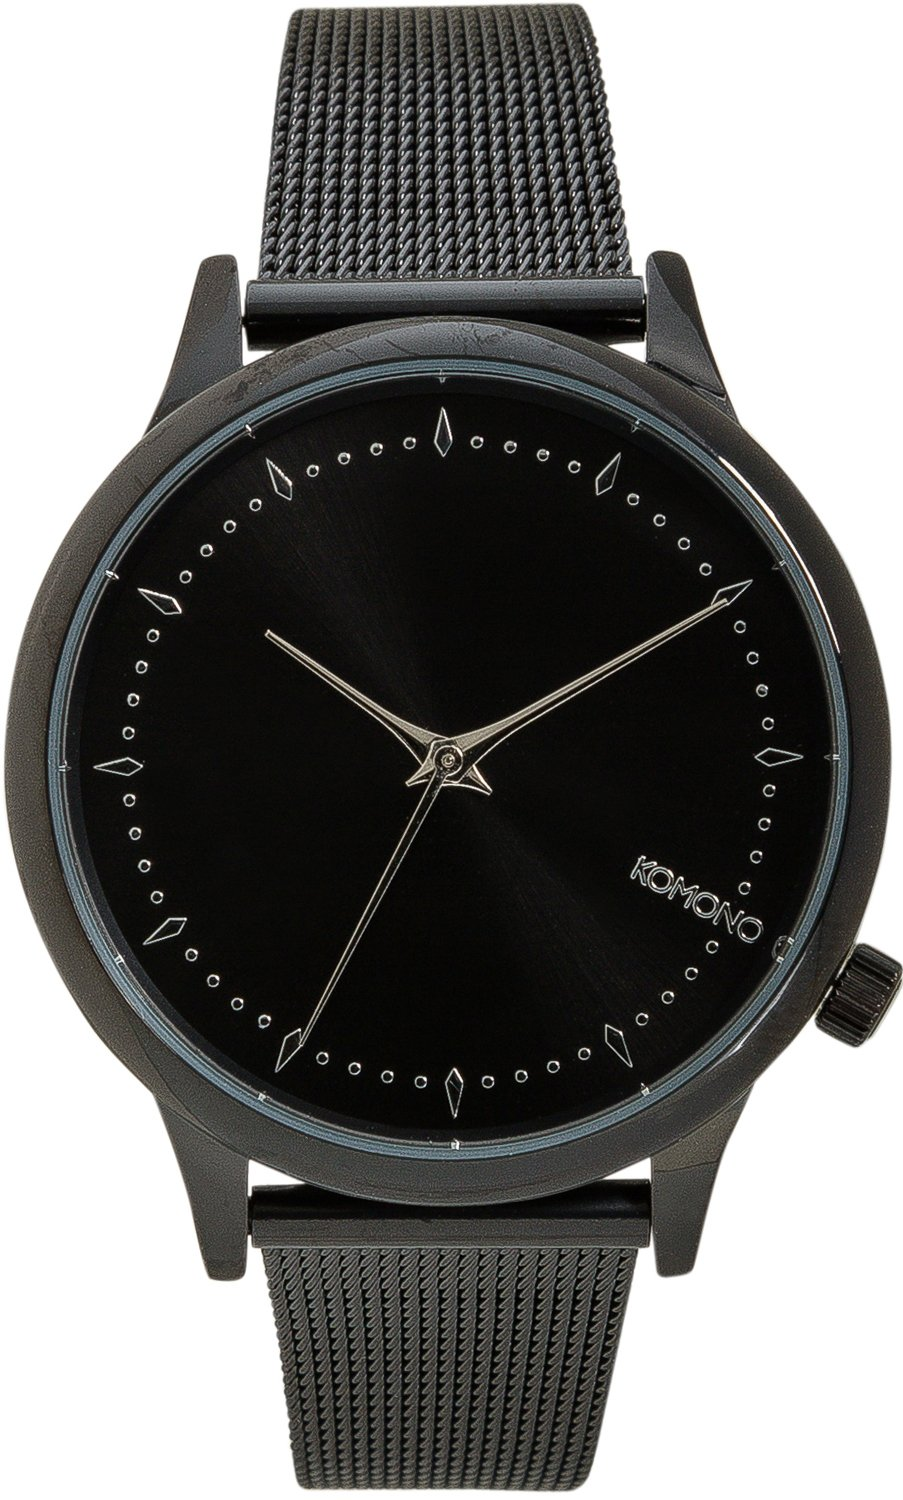 Komono - Estelle Royale - Reloj - Black/Silver-coloure: Amazon.es: Relojes